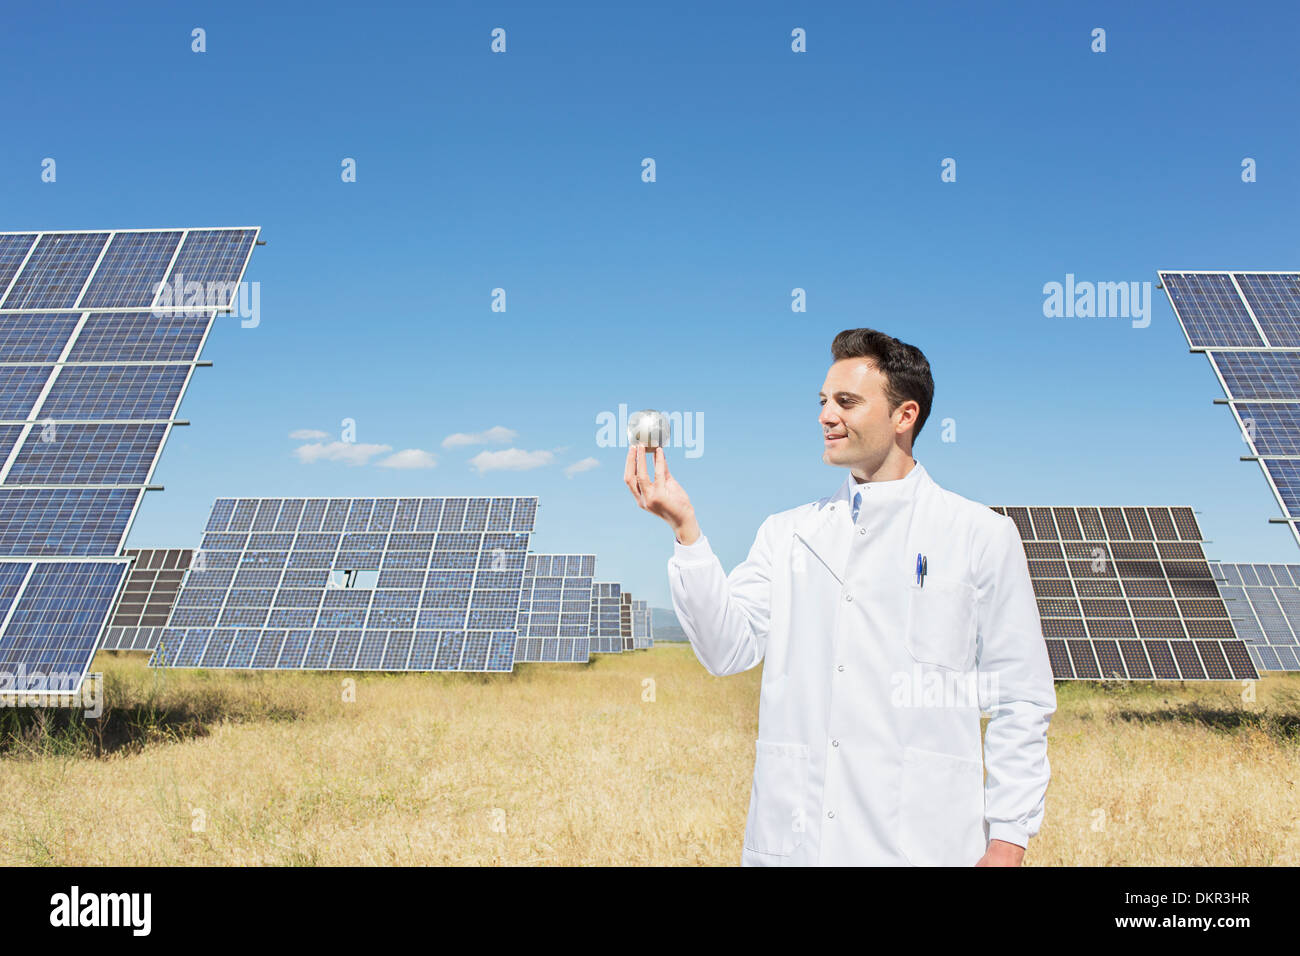 Scientist examining sphere by solar panels - Stock Image